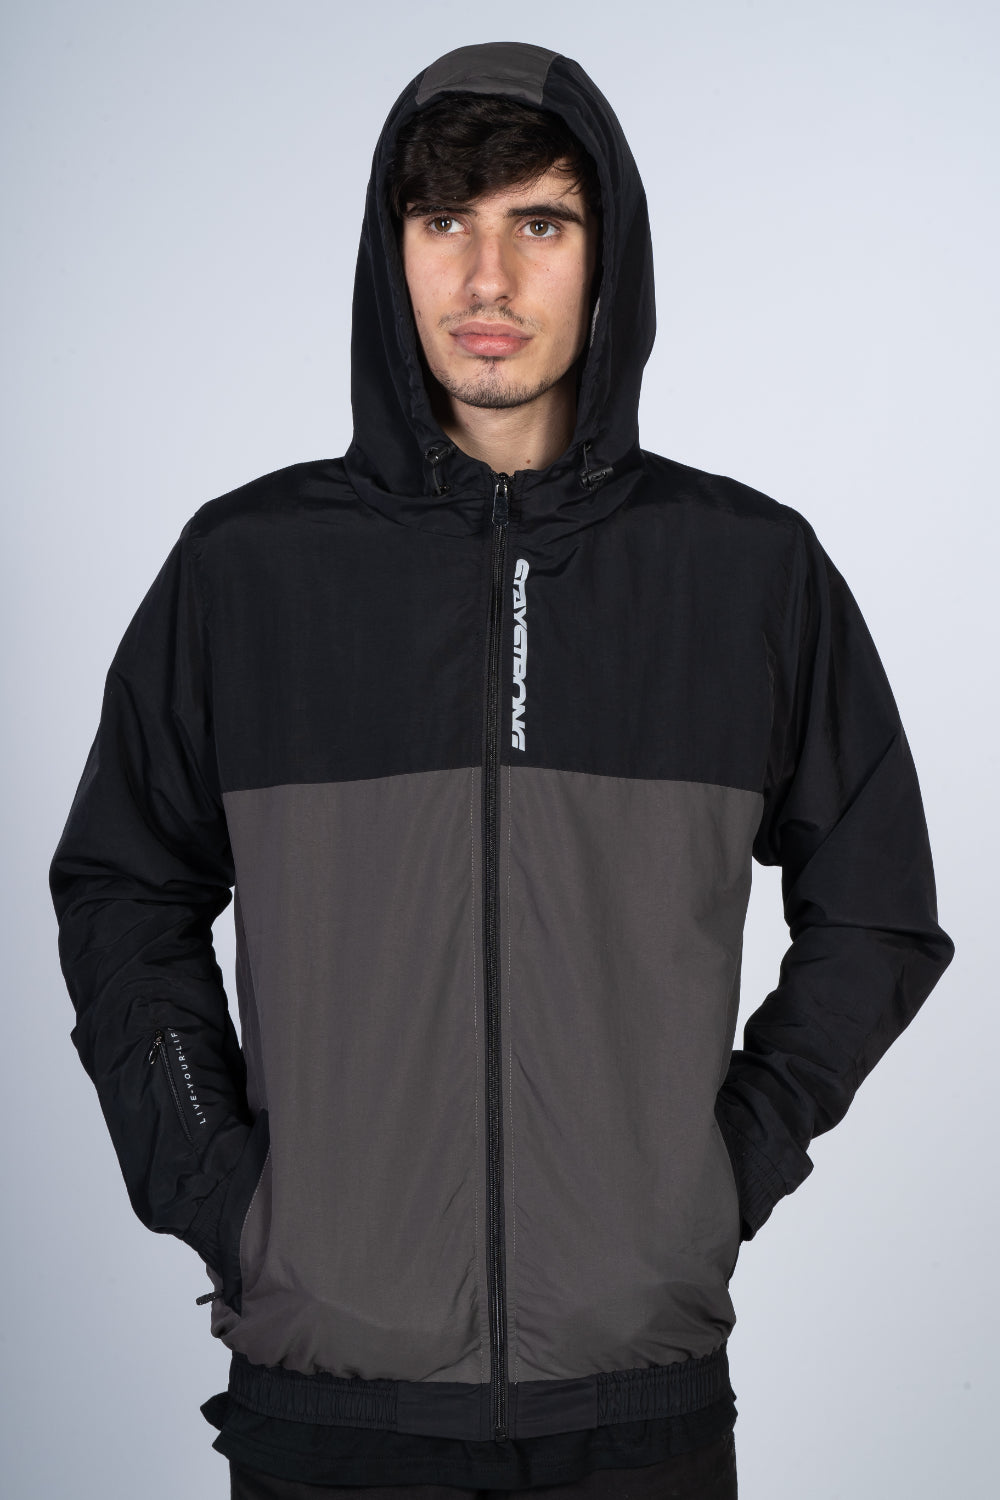 CUT OFF VERTICAL / JACKET / FULL ZIP / BLACK/GREY